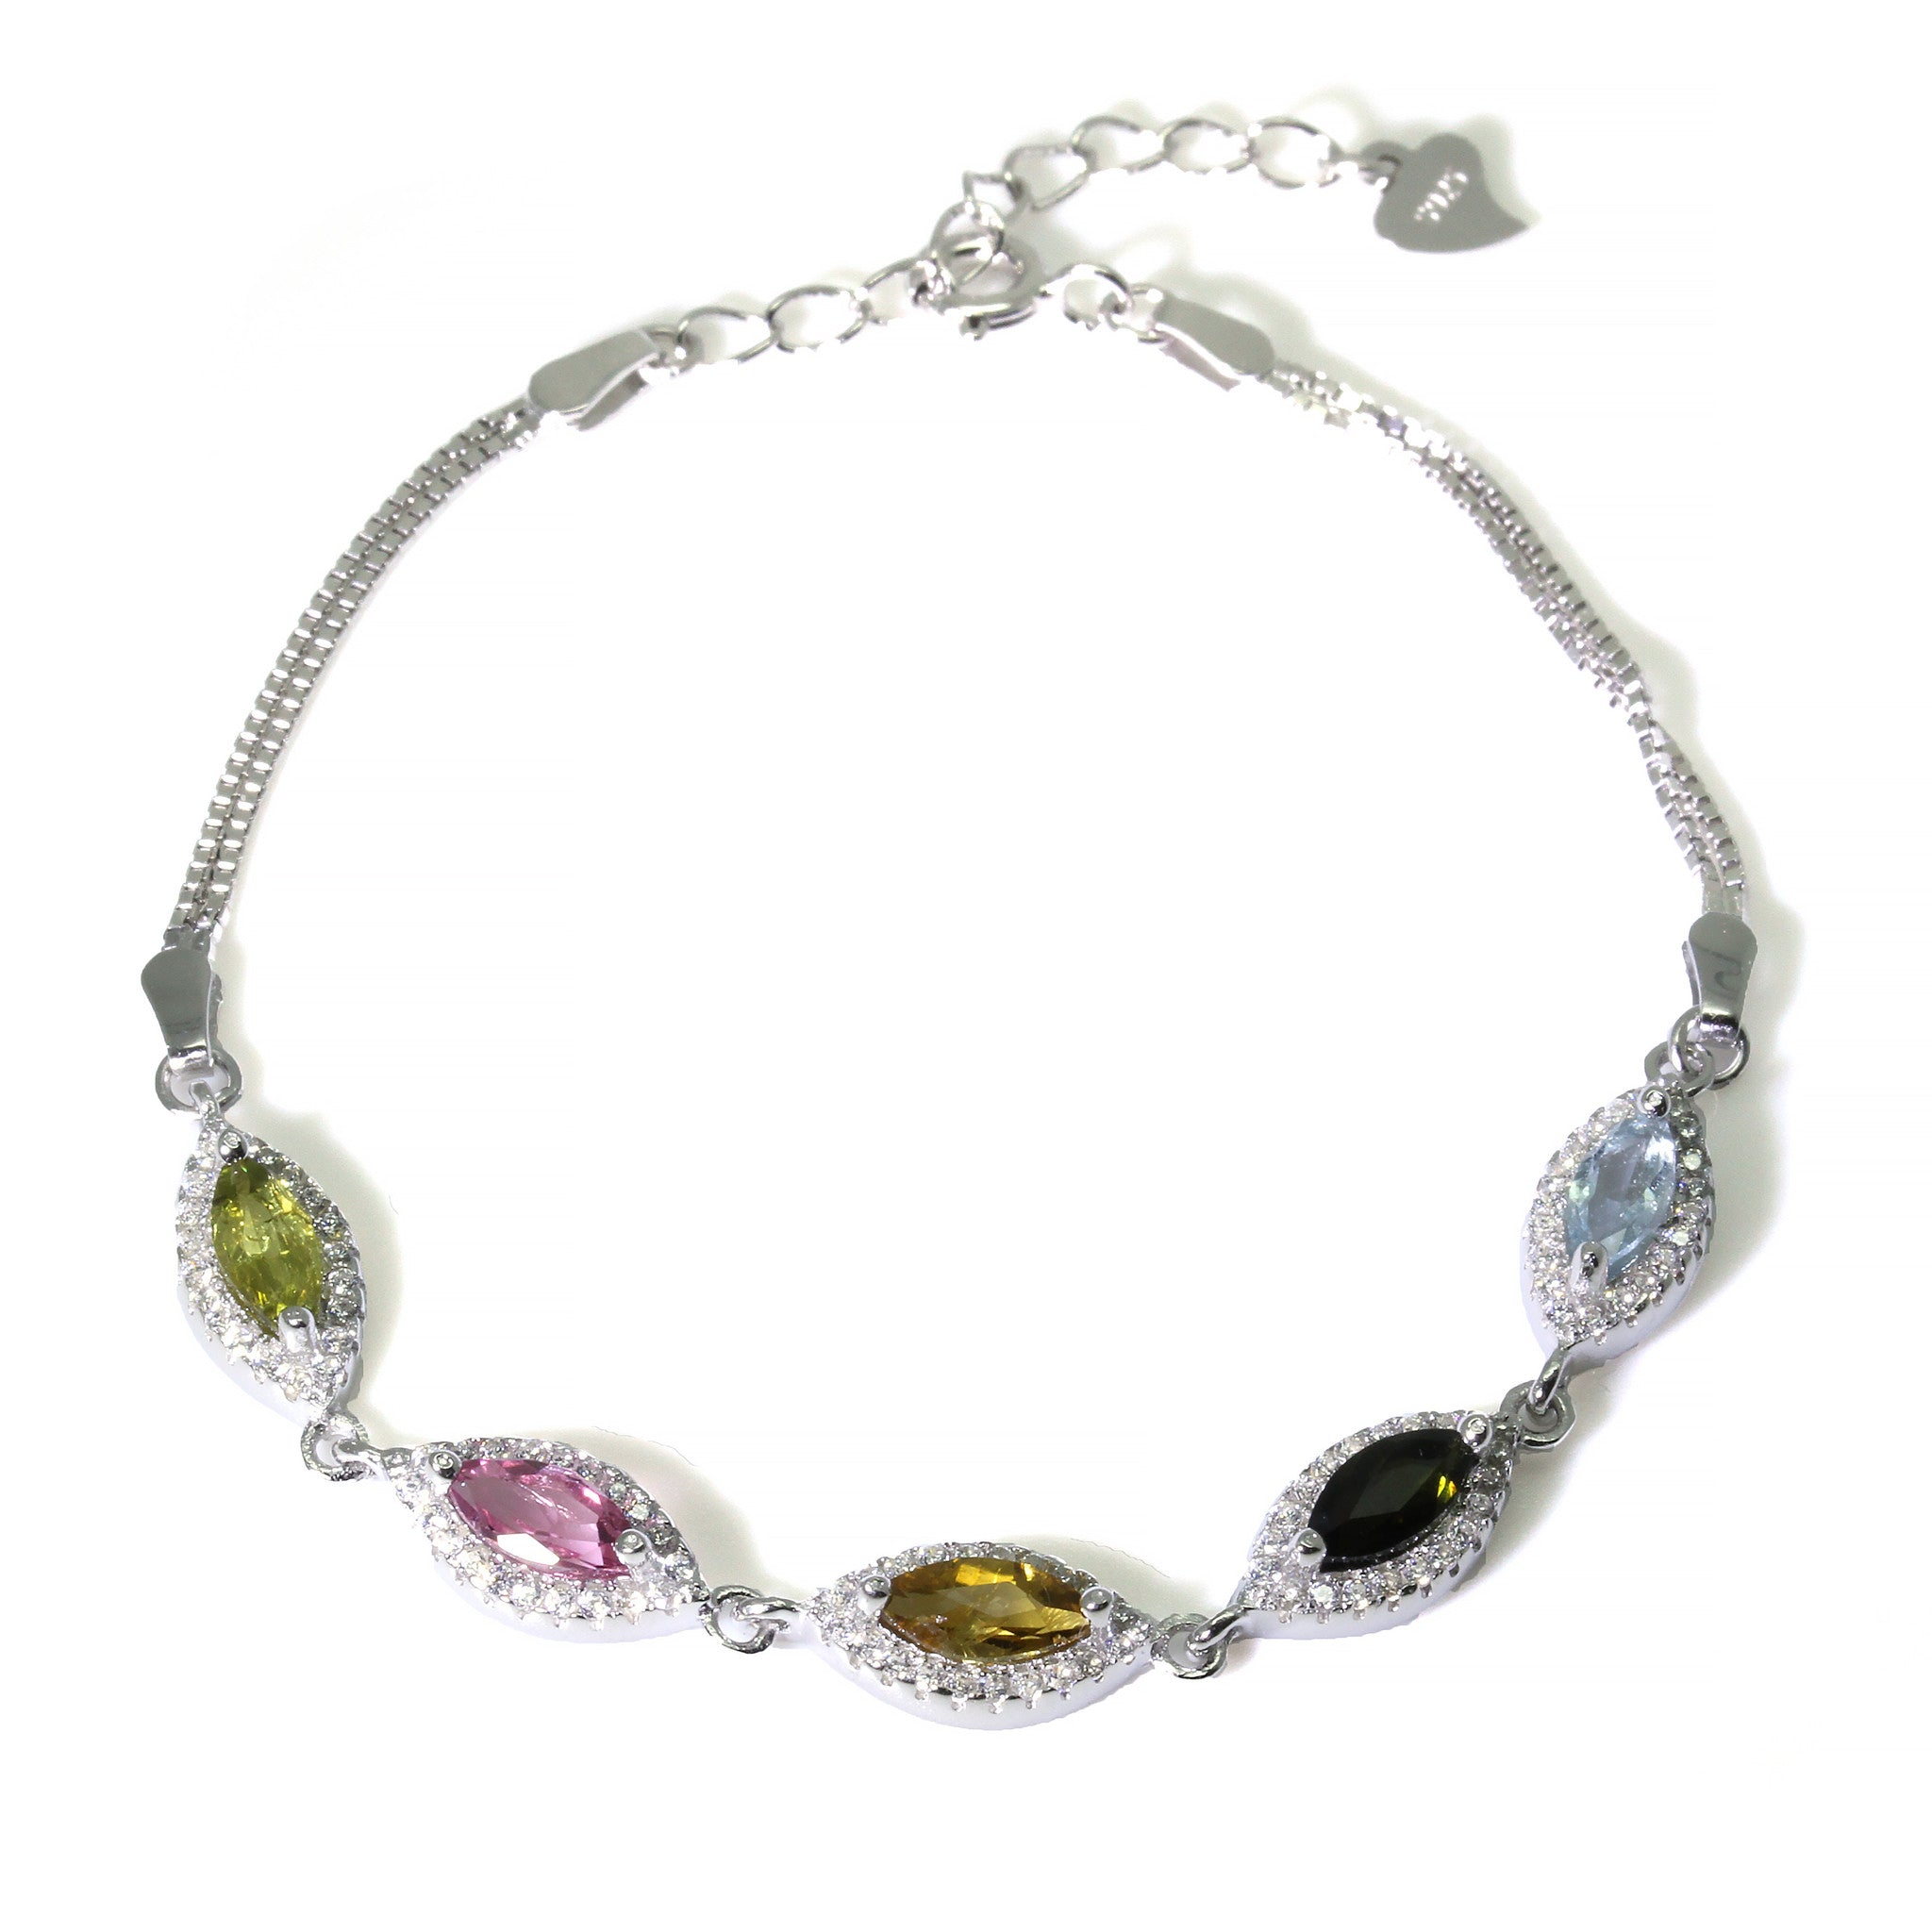 """7.8/"""" Sterling Silver Bracelet with 4 Multi-Colored Marquise-Shape Tourmaline Gemstones"""